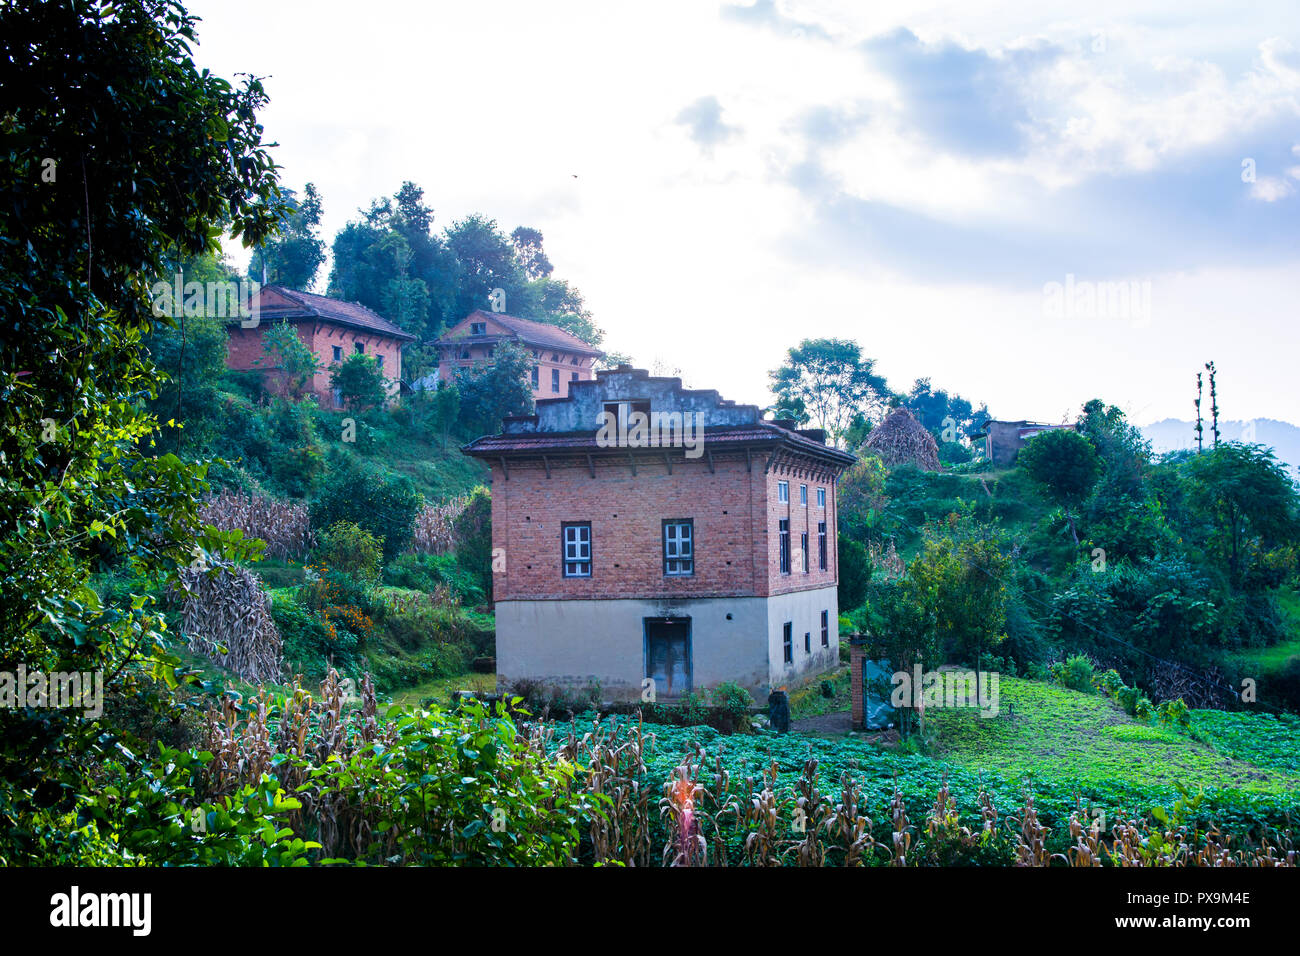 Village Houses from Nepal - Stock Image